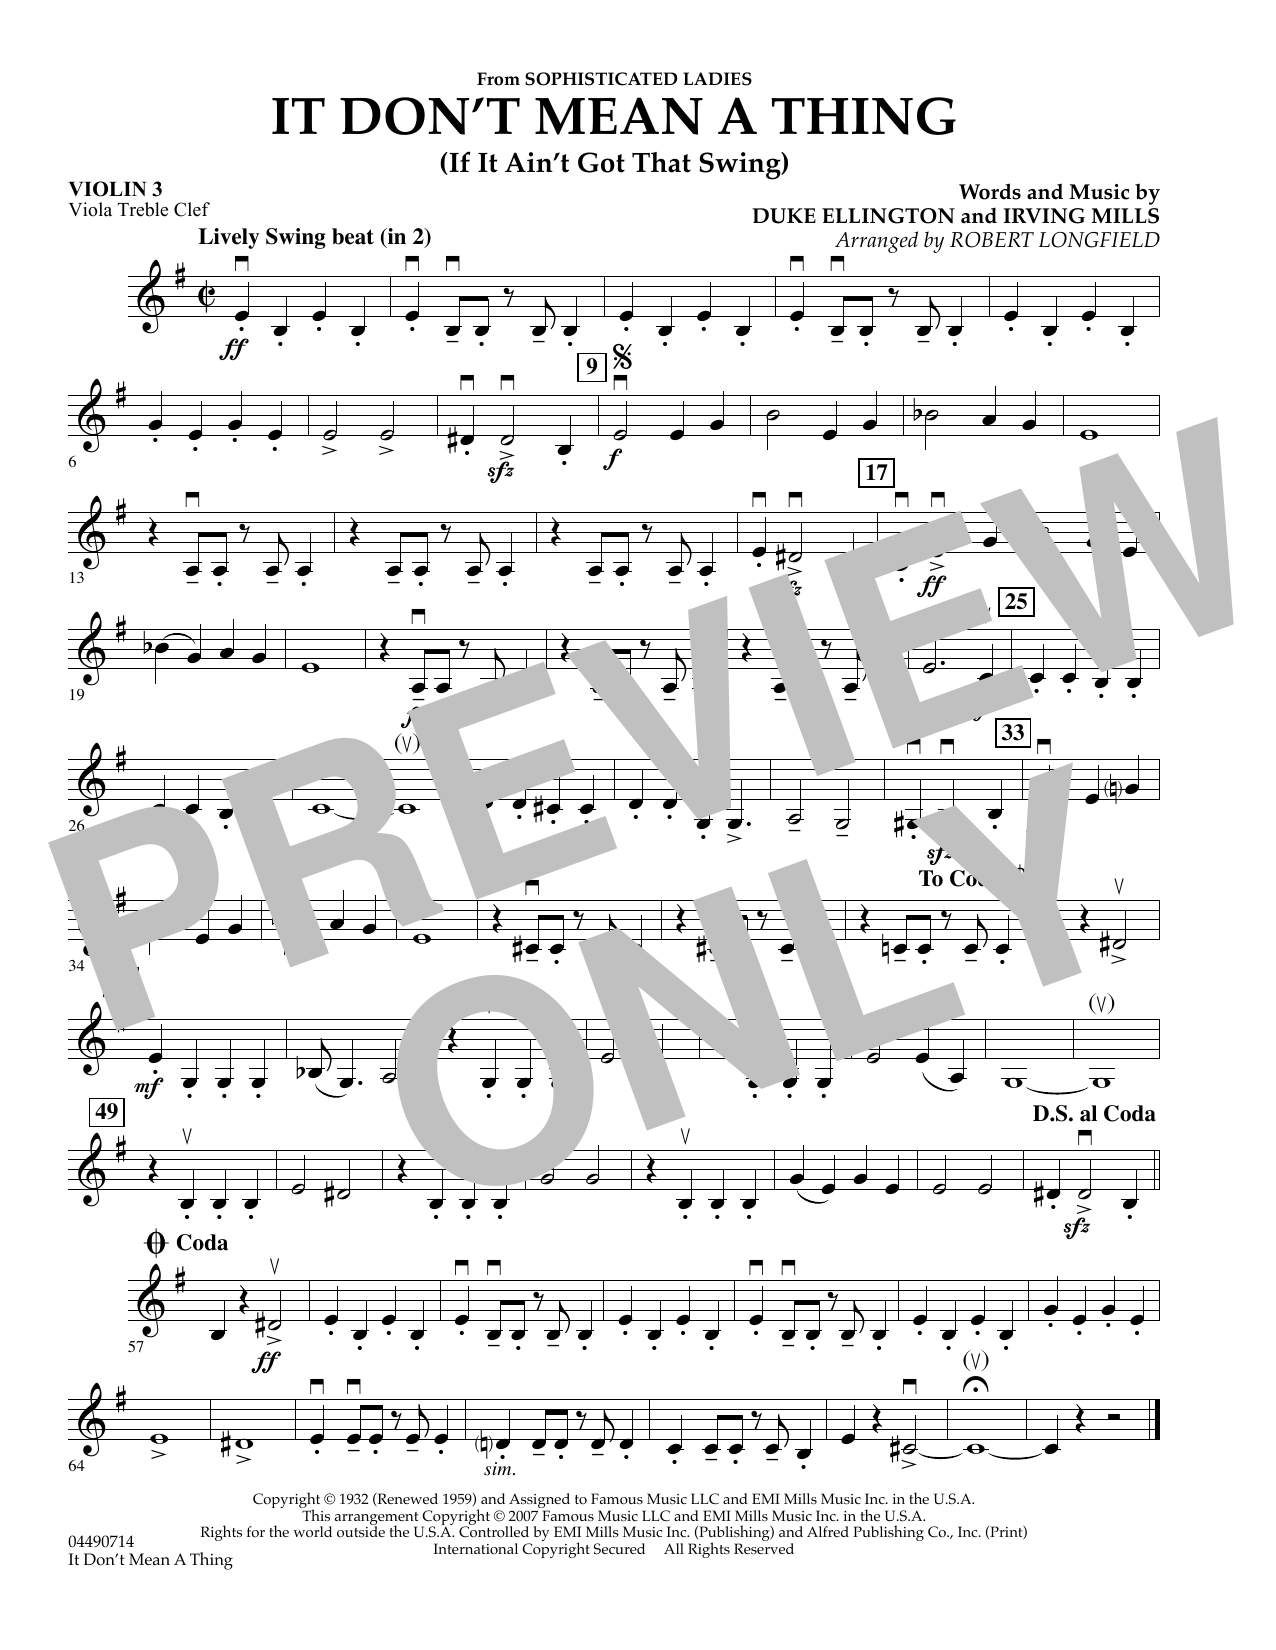 It Don't Mean A Thing - Violin 3 (Viola Treble Clef) Sheet Music